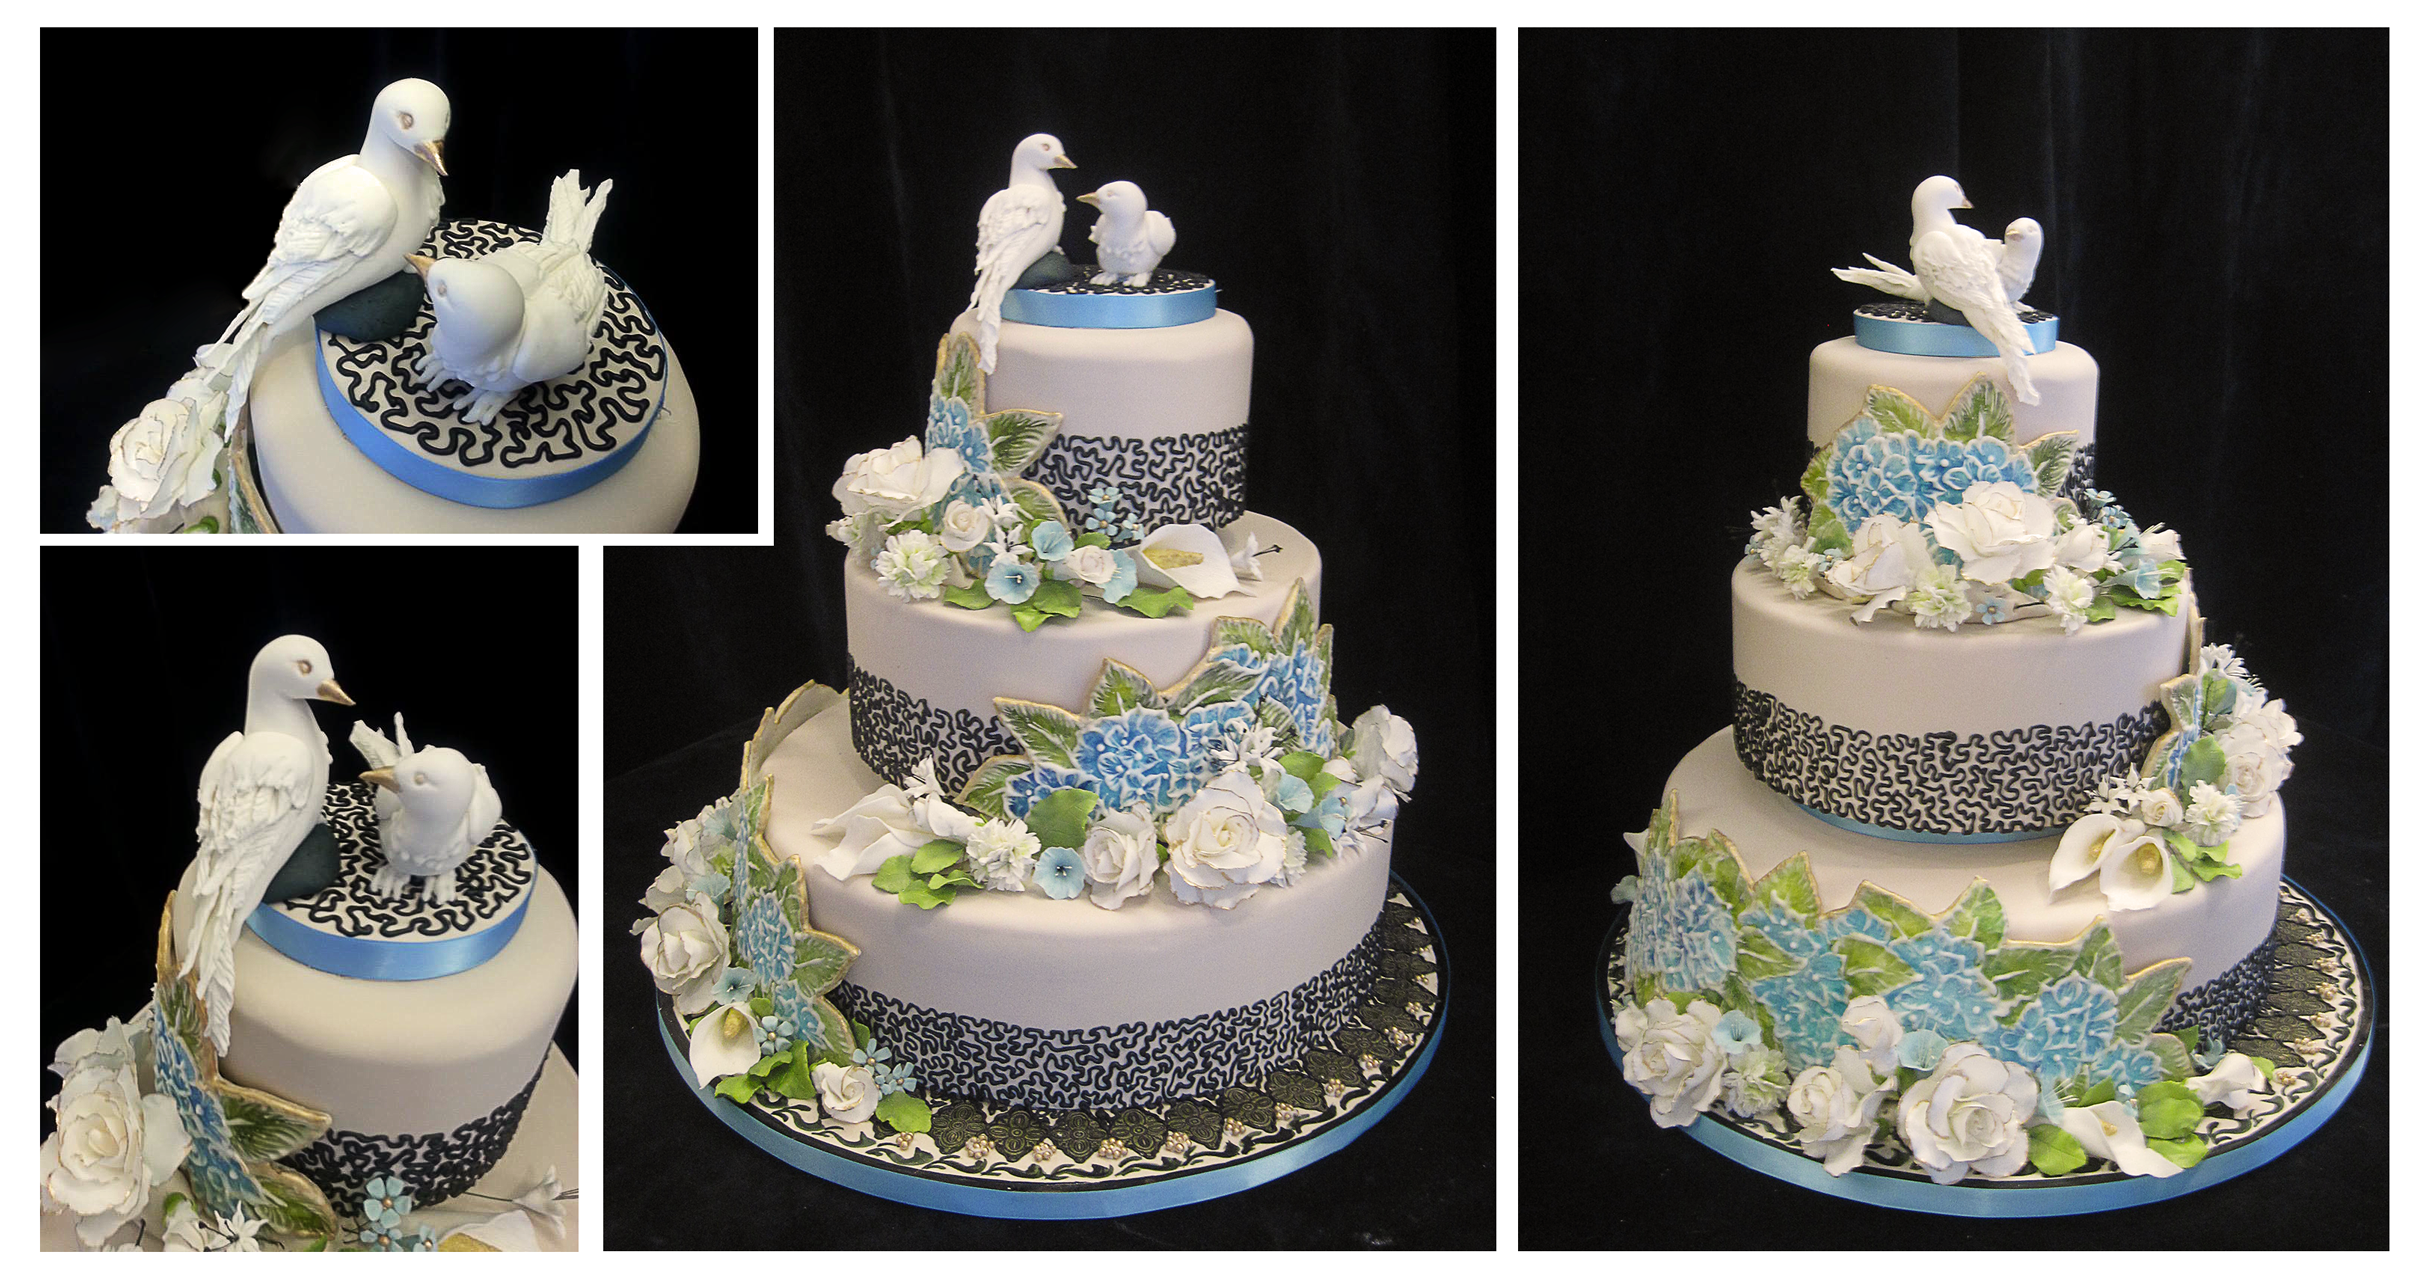 where can i buy a wedding cake hydrangeas and doves wedding cake by plangkye on deviantart 27133